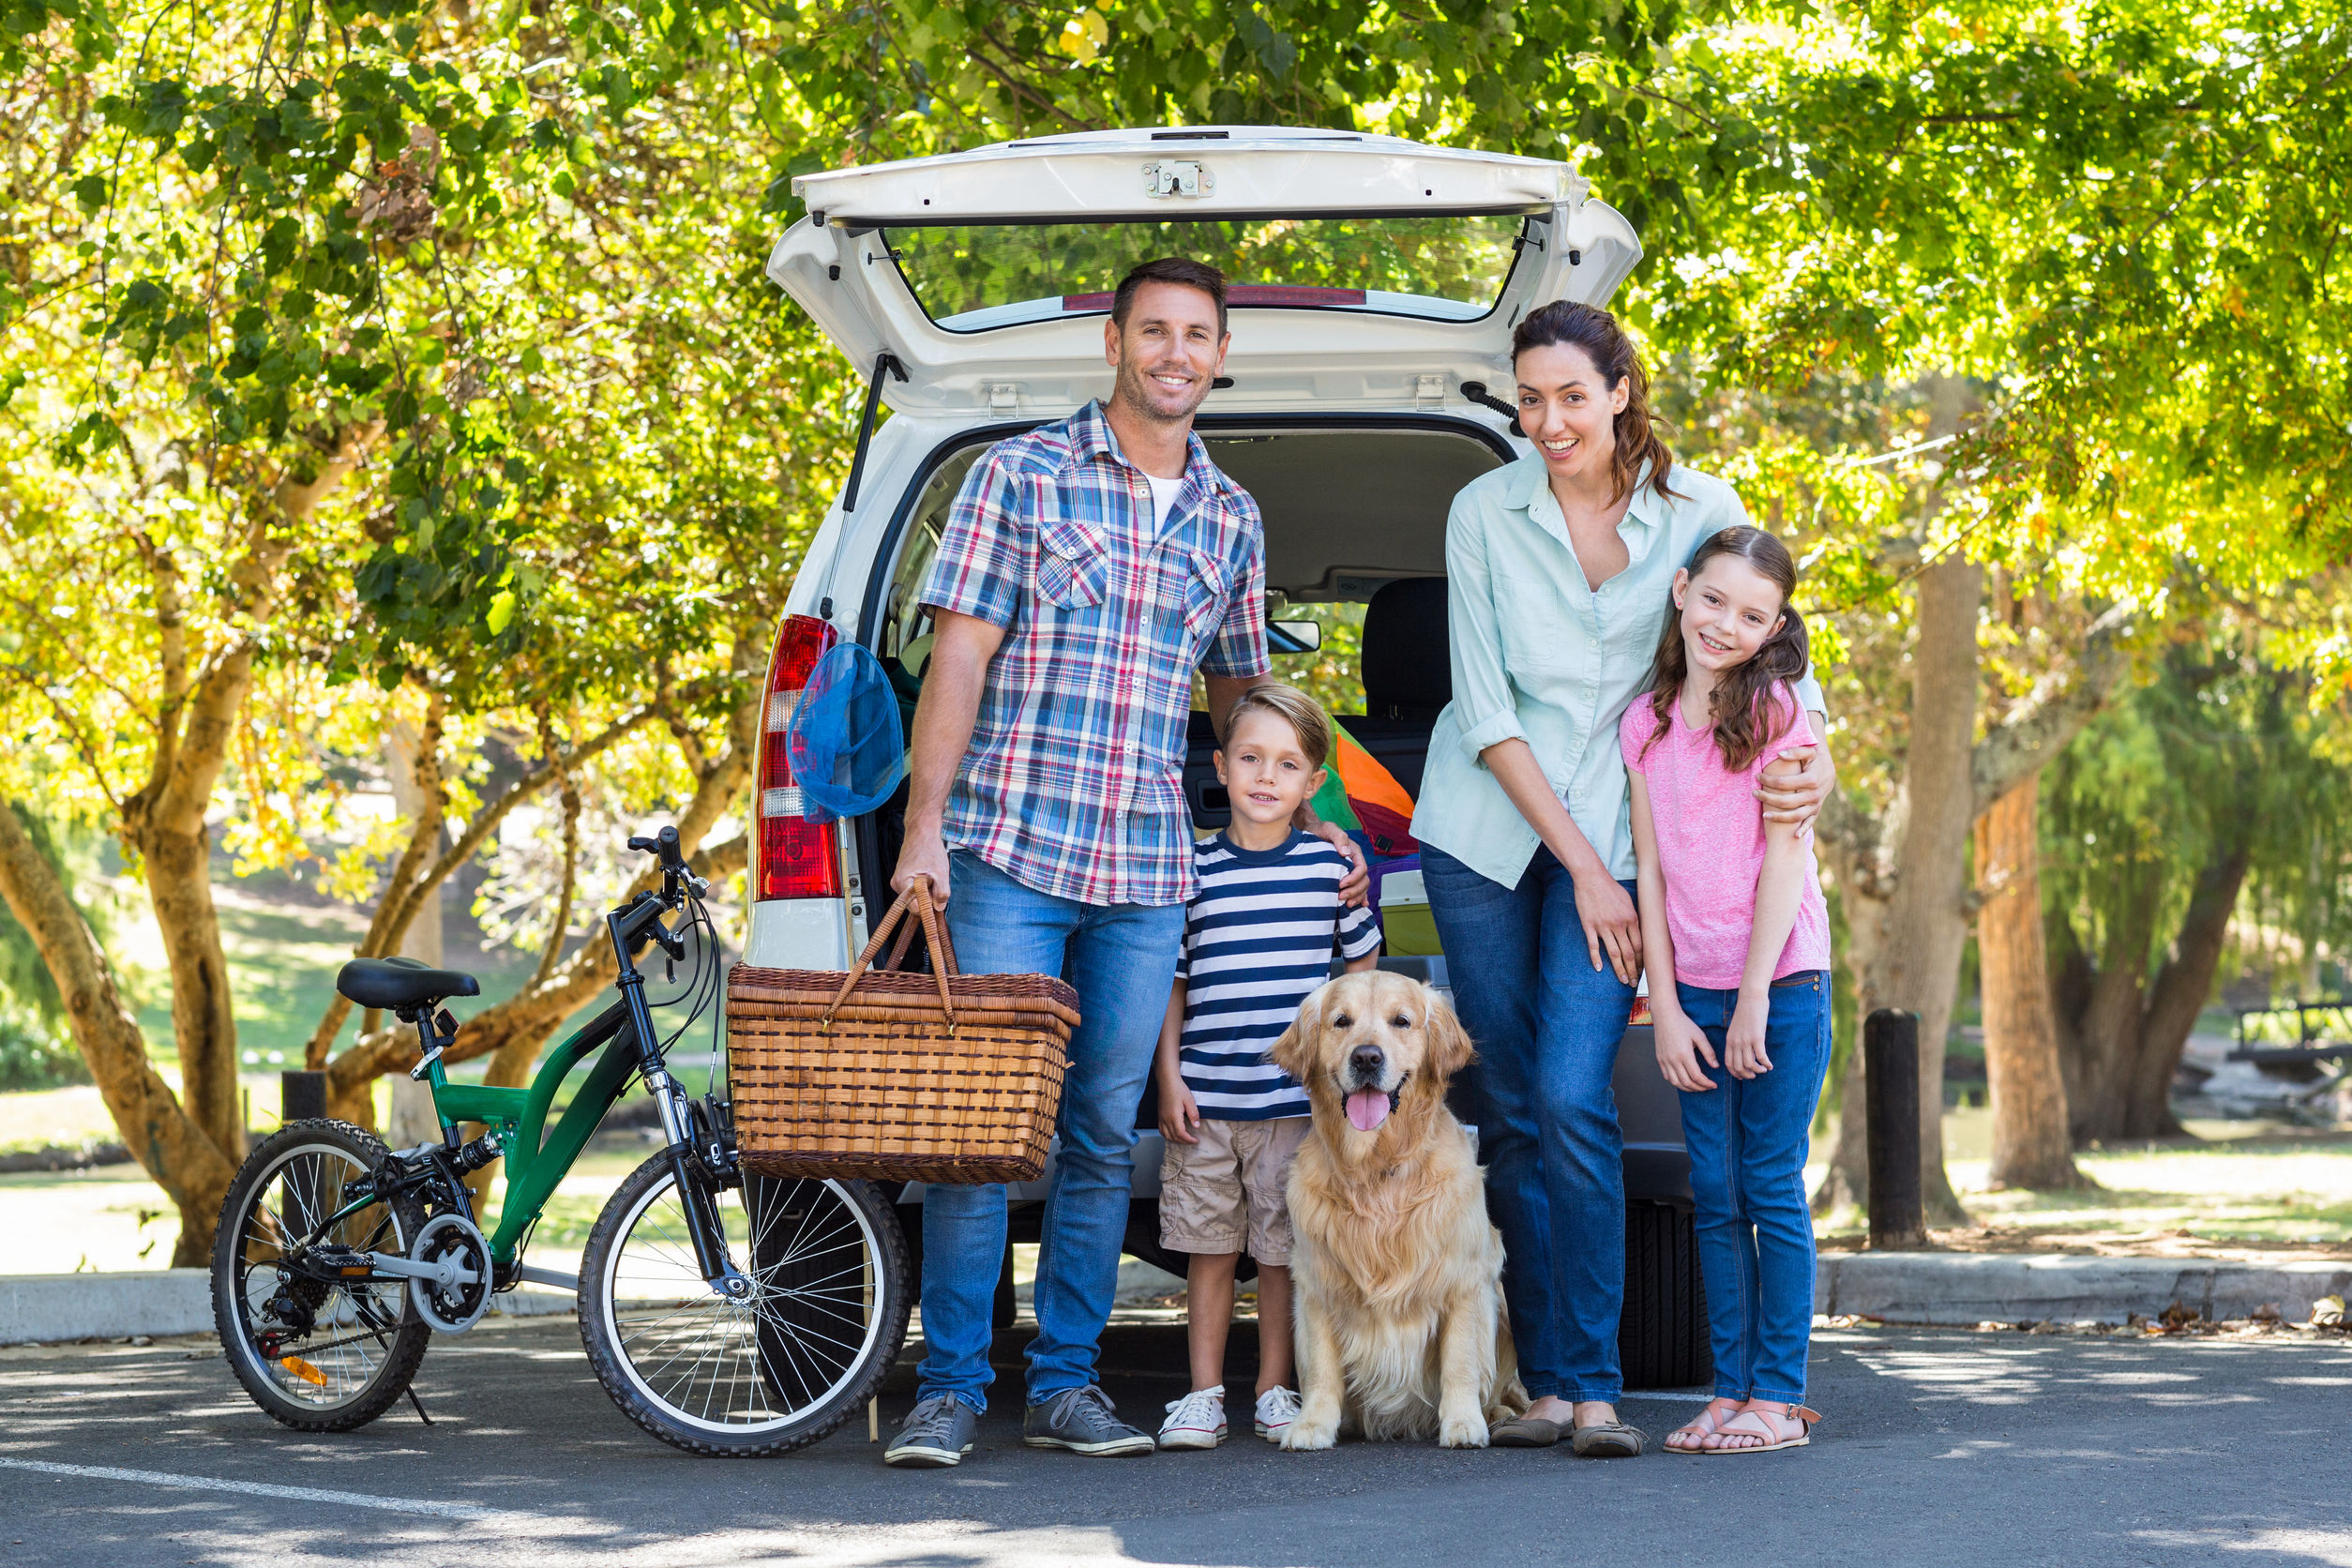 Smiling family and their dog getting ready for a road trip with a bike and picnic basket